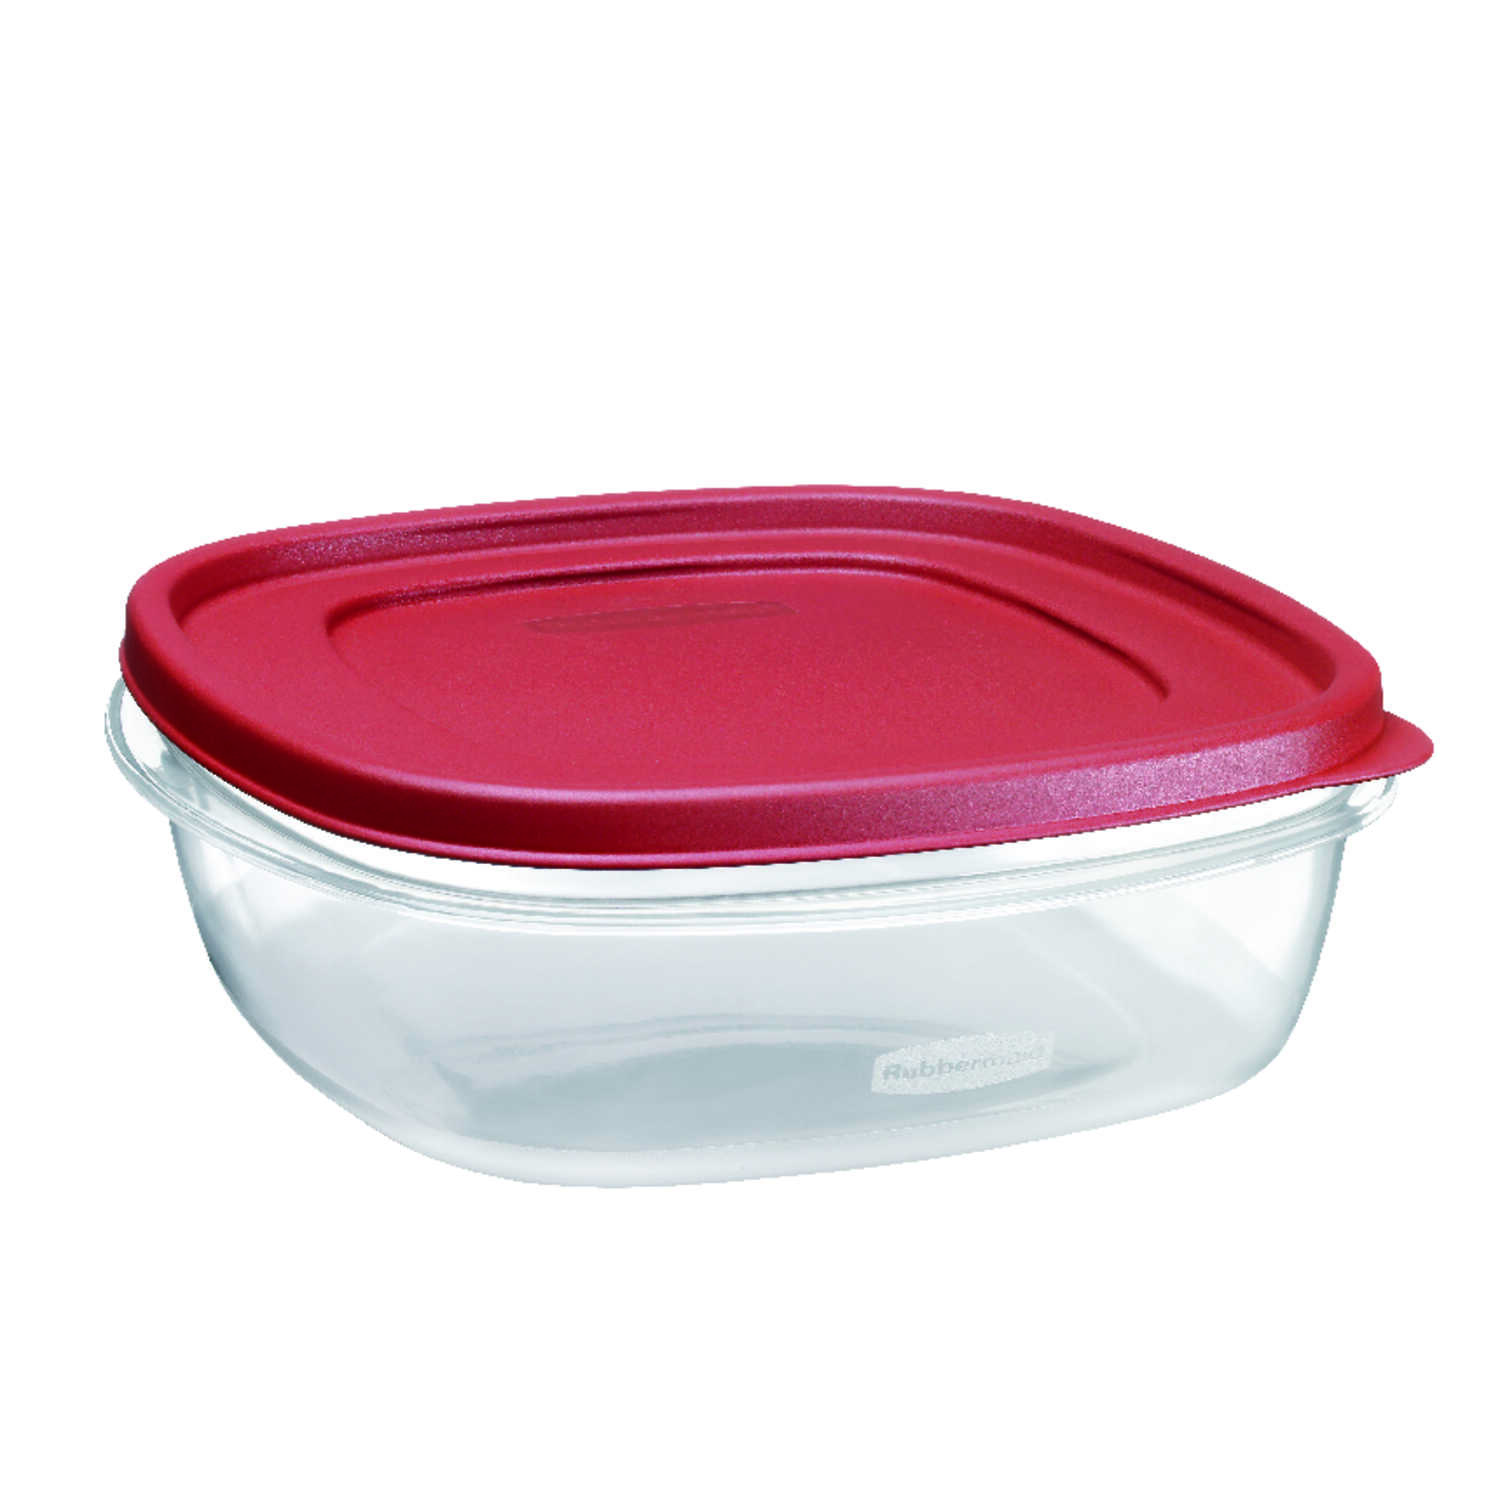 Rubbermaid  Food Storage Container  9 cups